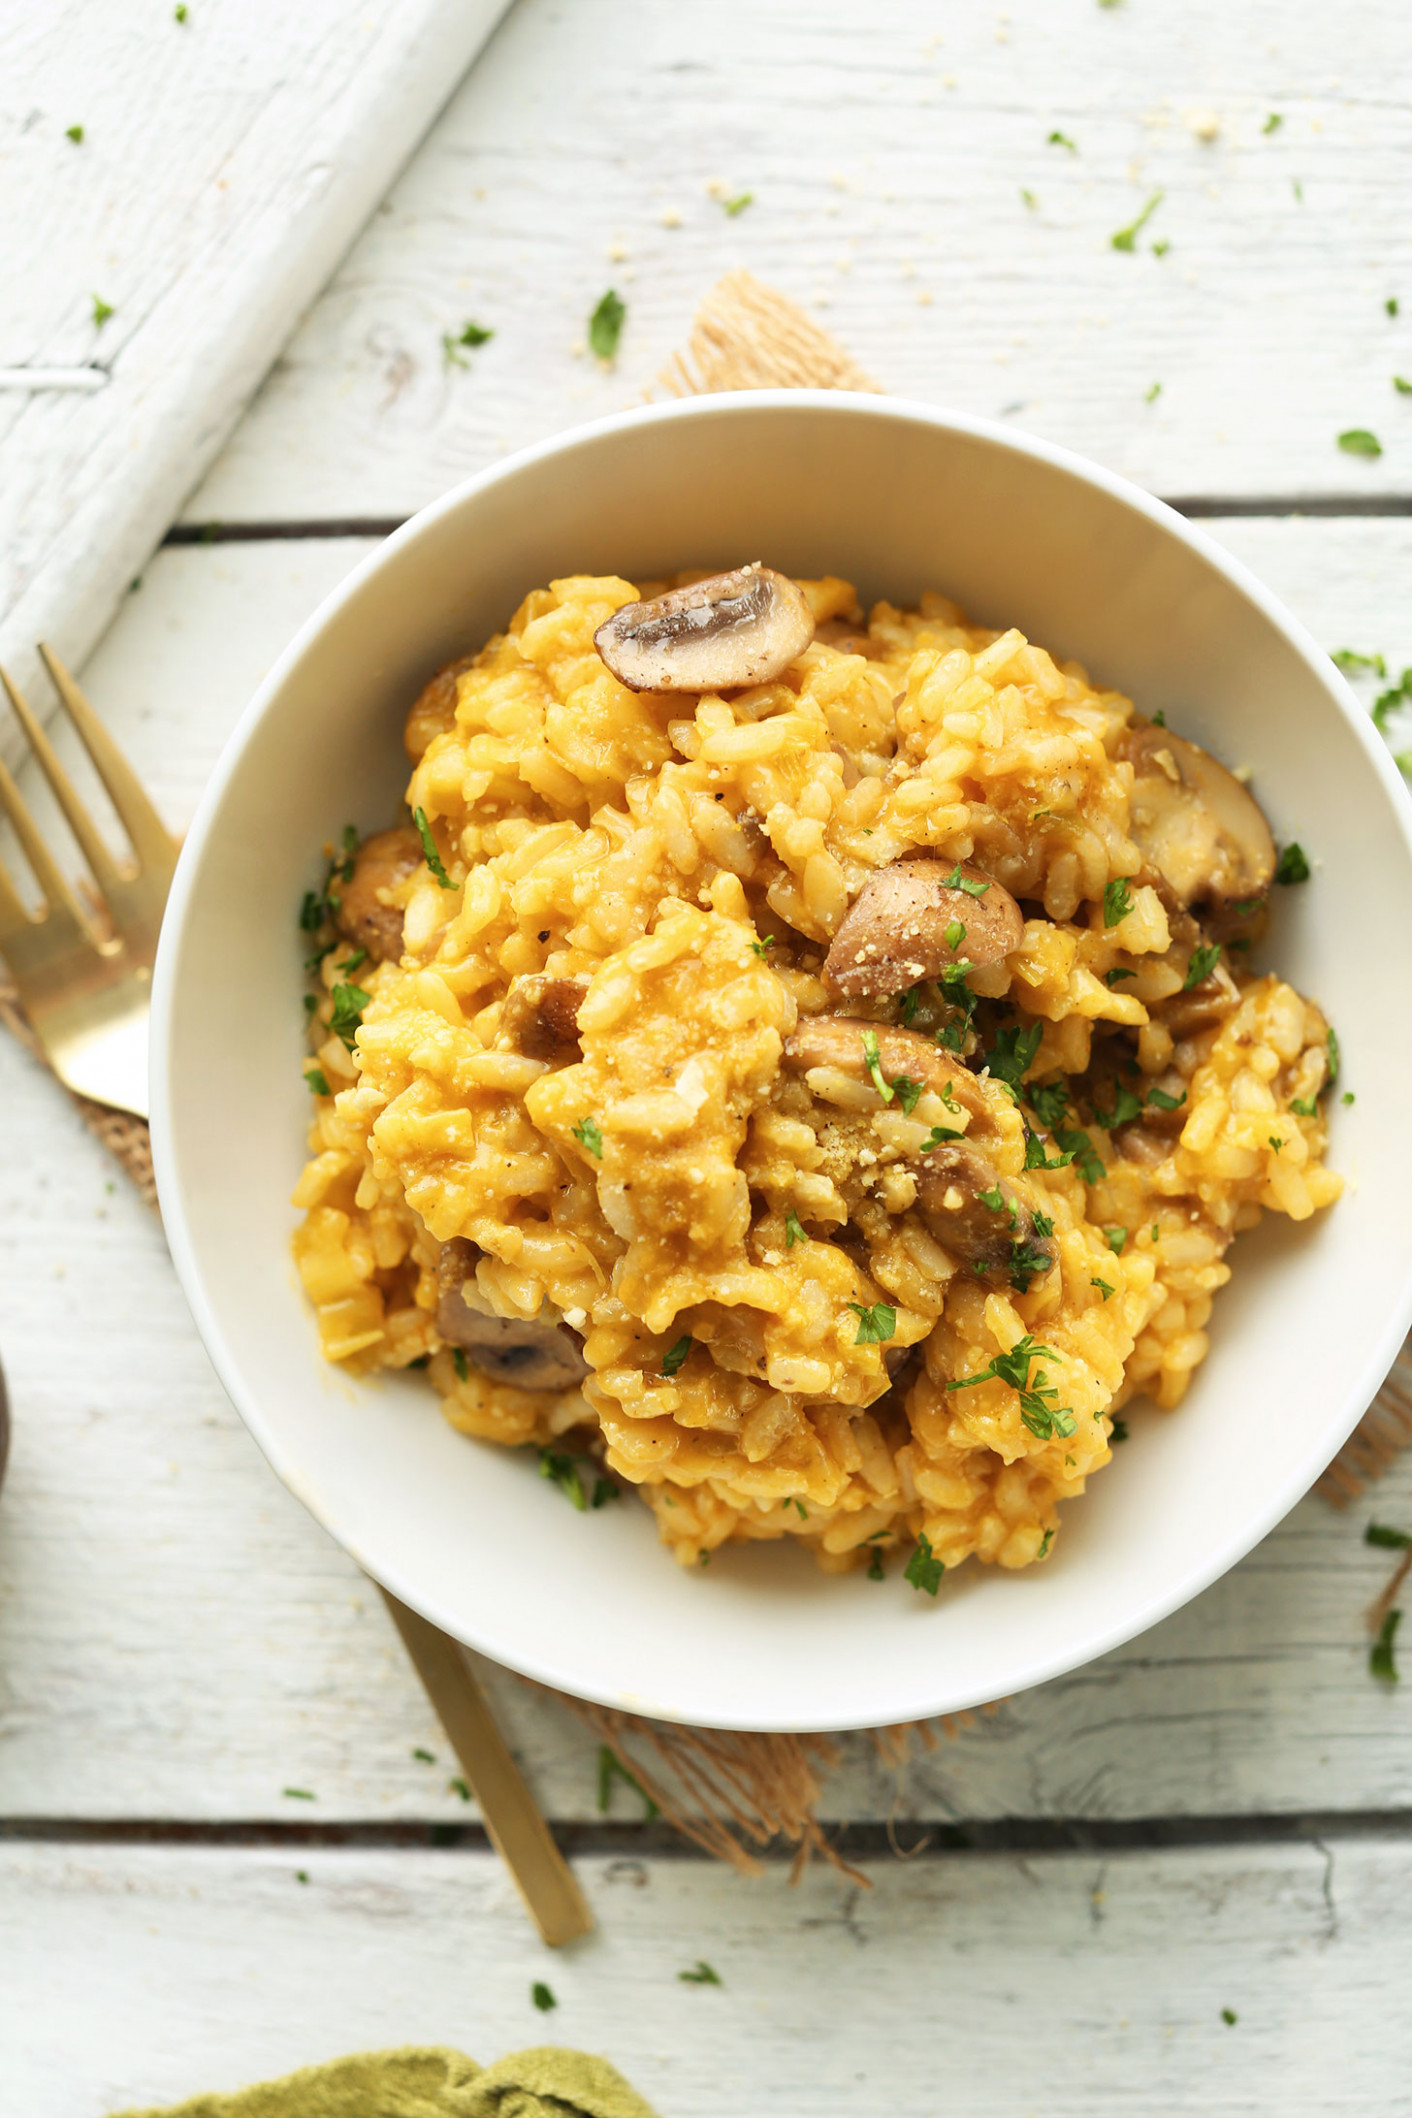 Vegan Risotto Recipes Guaranteed to please | VegKitchen